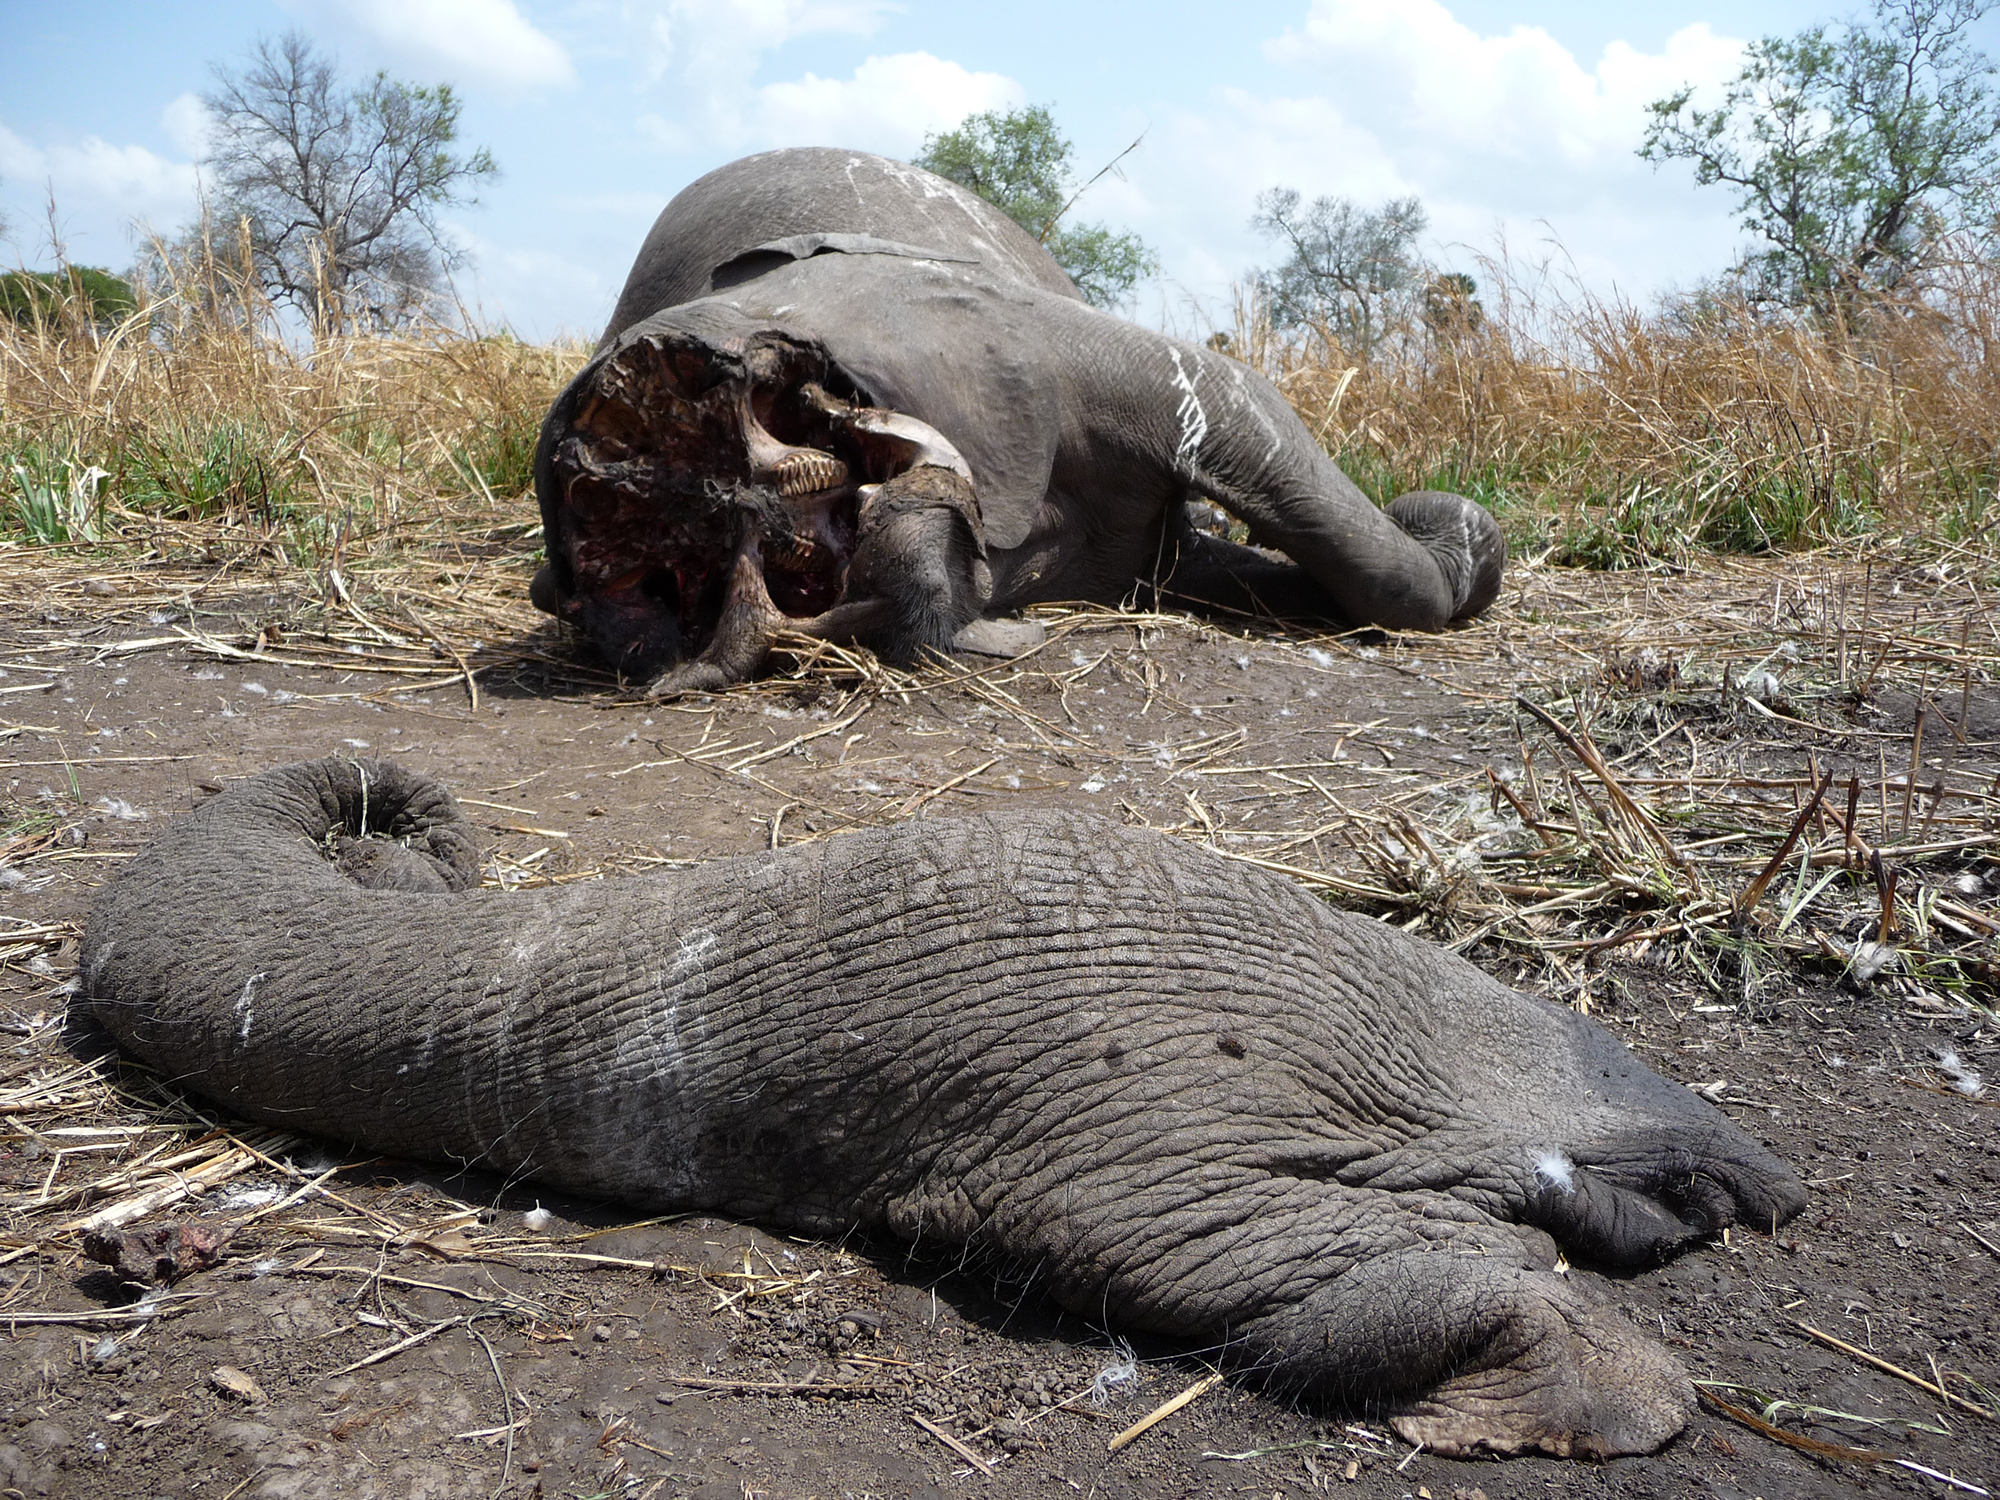 The sad sight of poached elephants, Tanzania © Dave Abbott